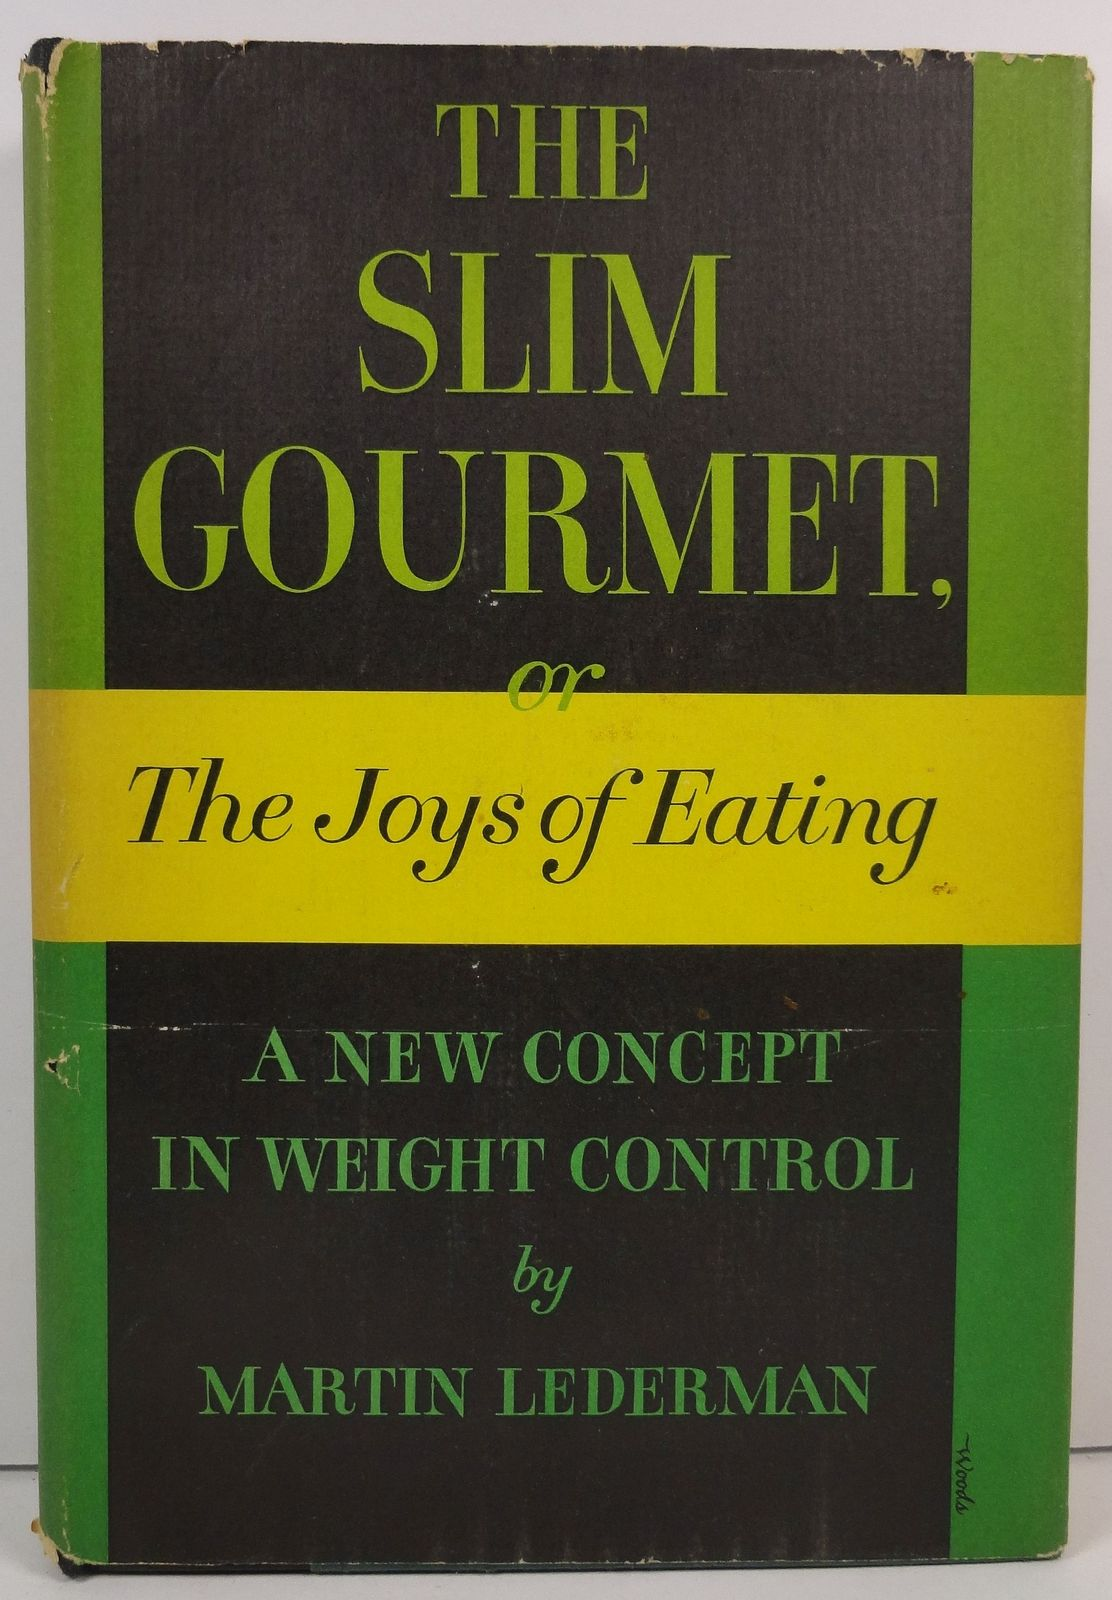 The Slim Gourmet or Joys of Eating Martin Lederman 1955 HCDJ